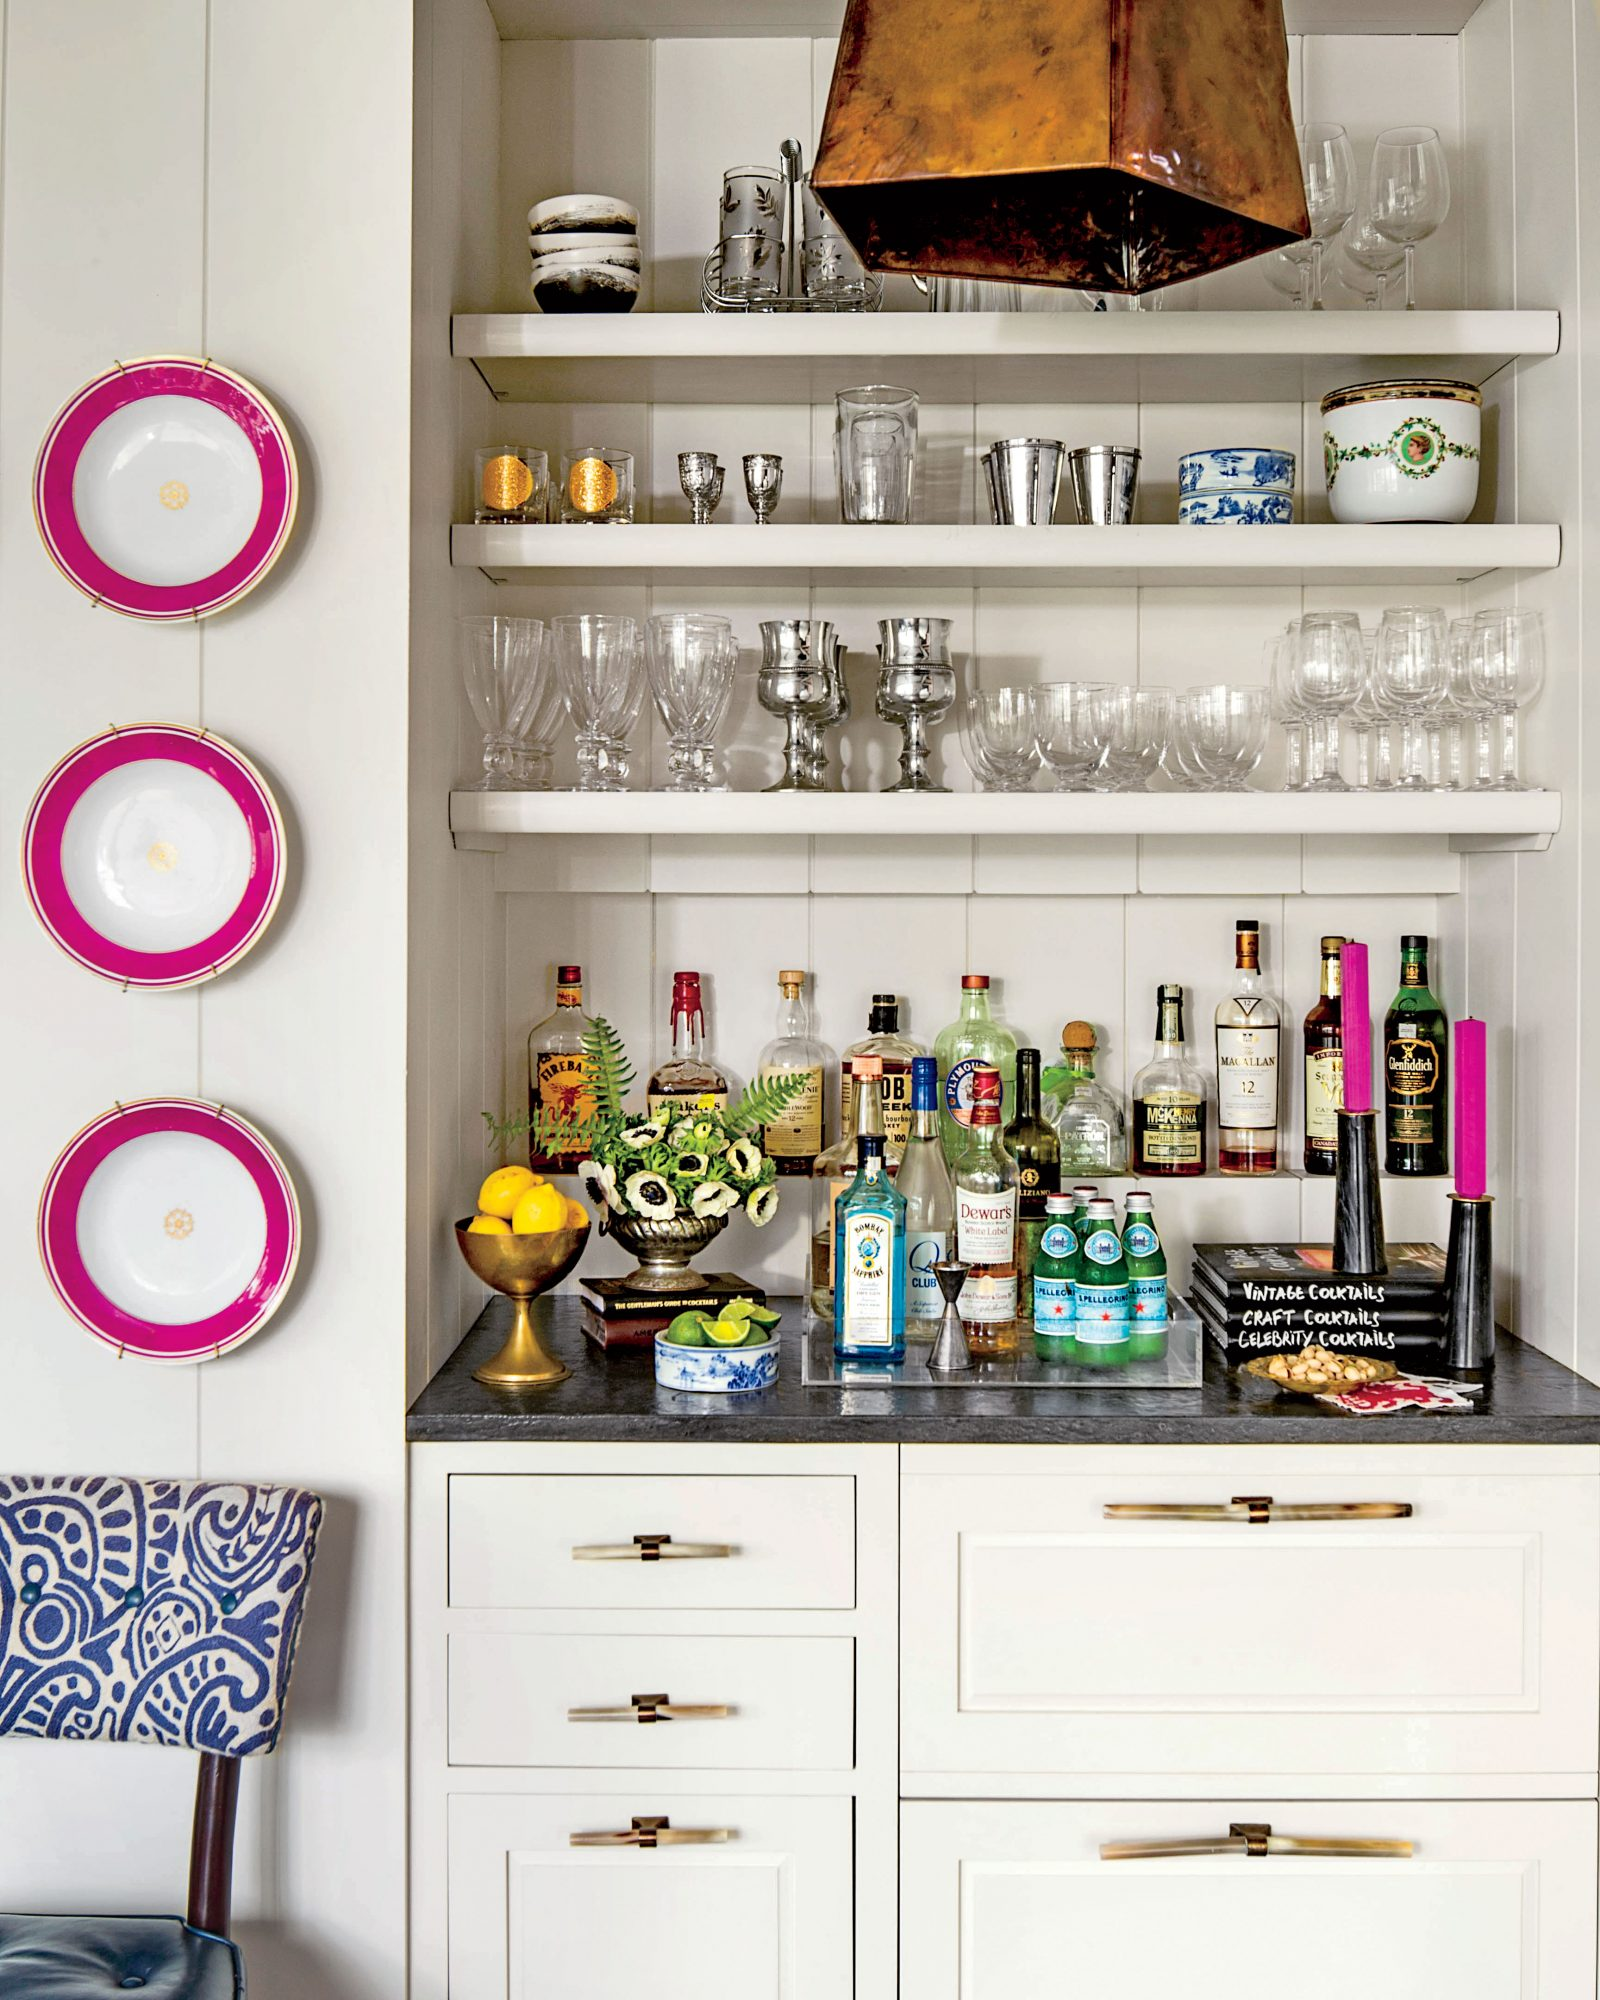 The Built-In Bar: Give It an Accent